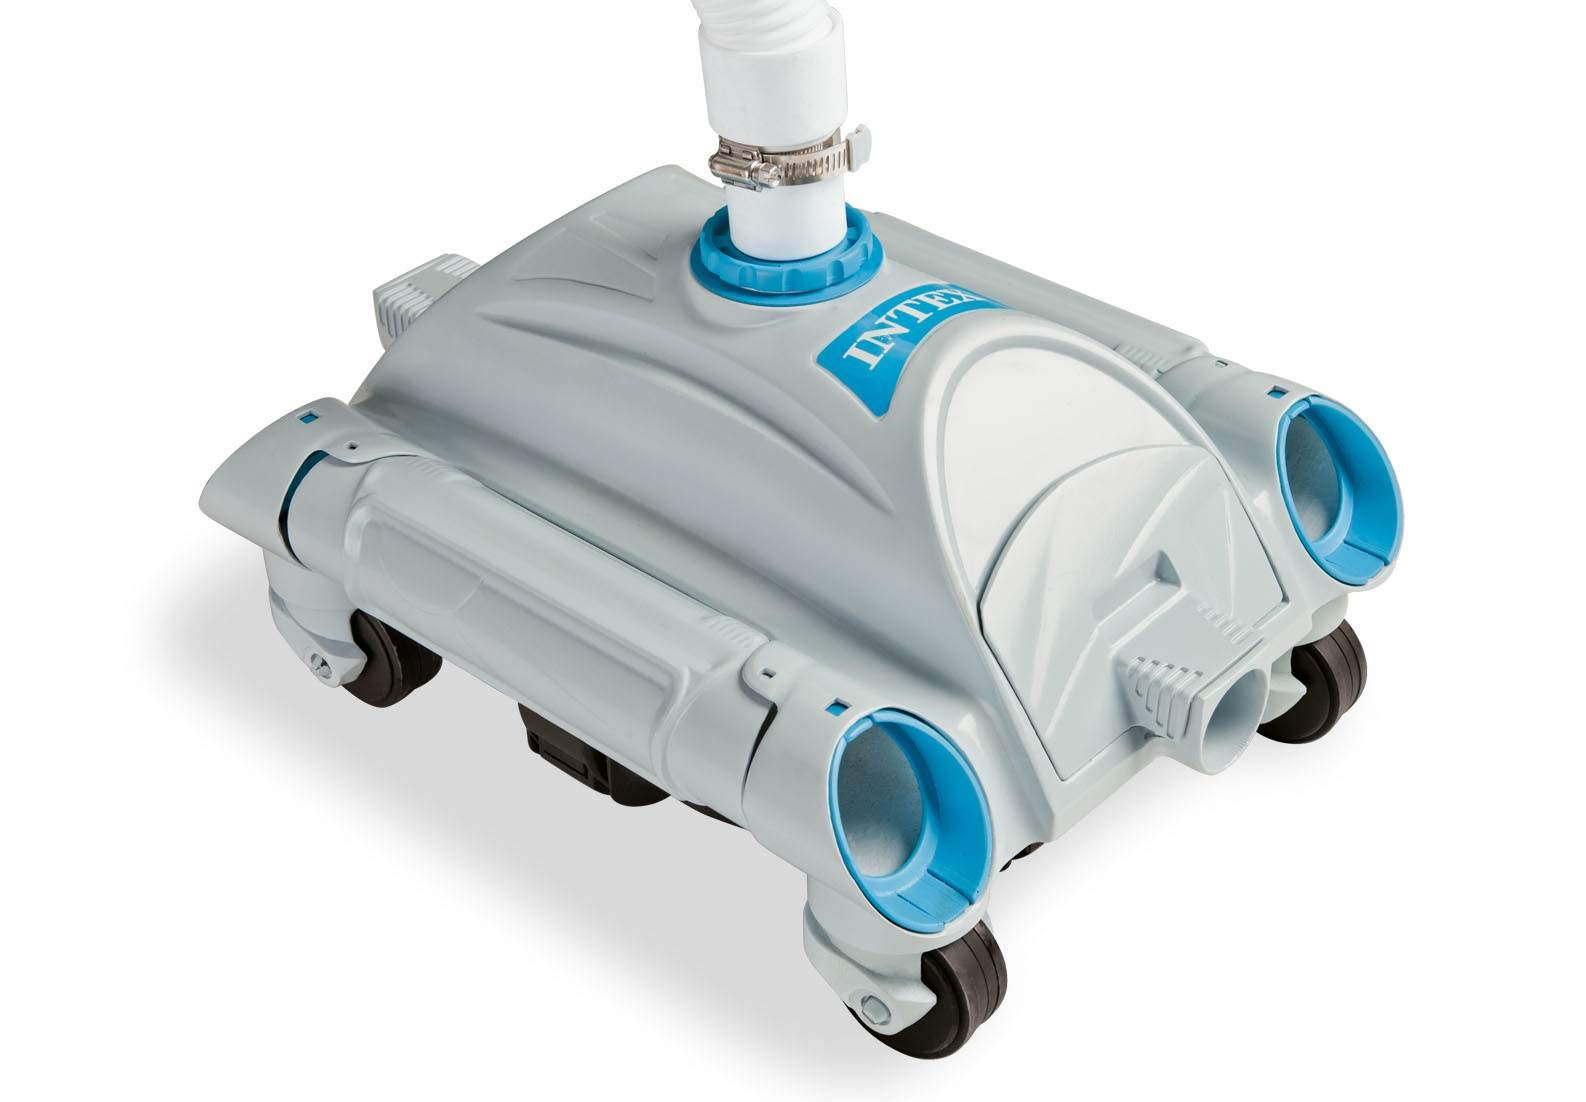 Intex Automatic Above Ground Pool Vacuum for Pumps 1600-3500 GPH & Skimmer Kit by Intex